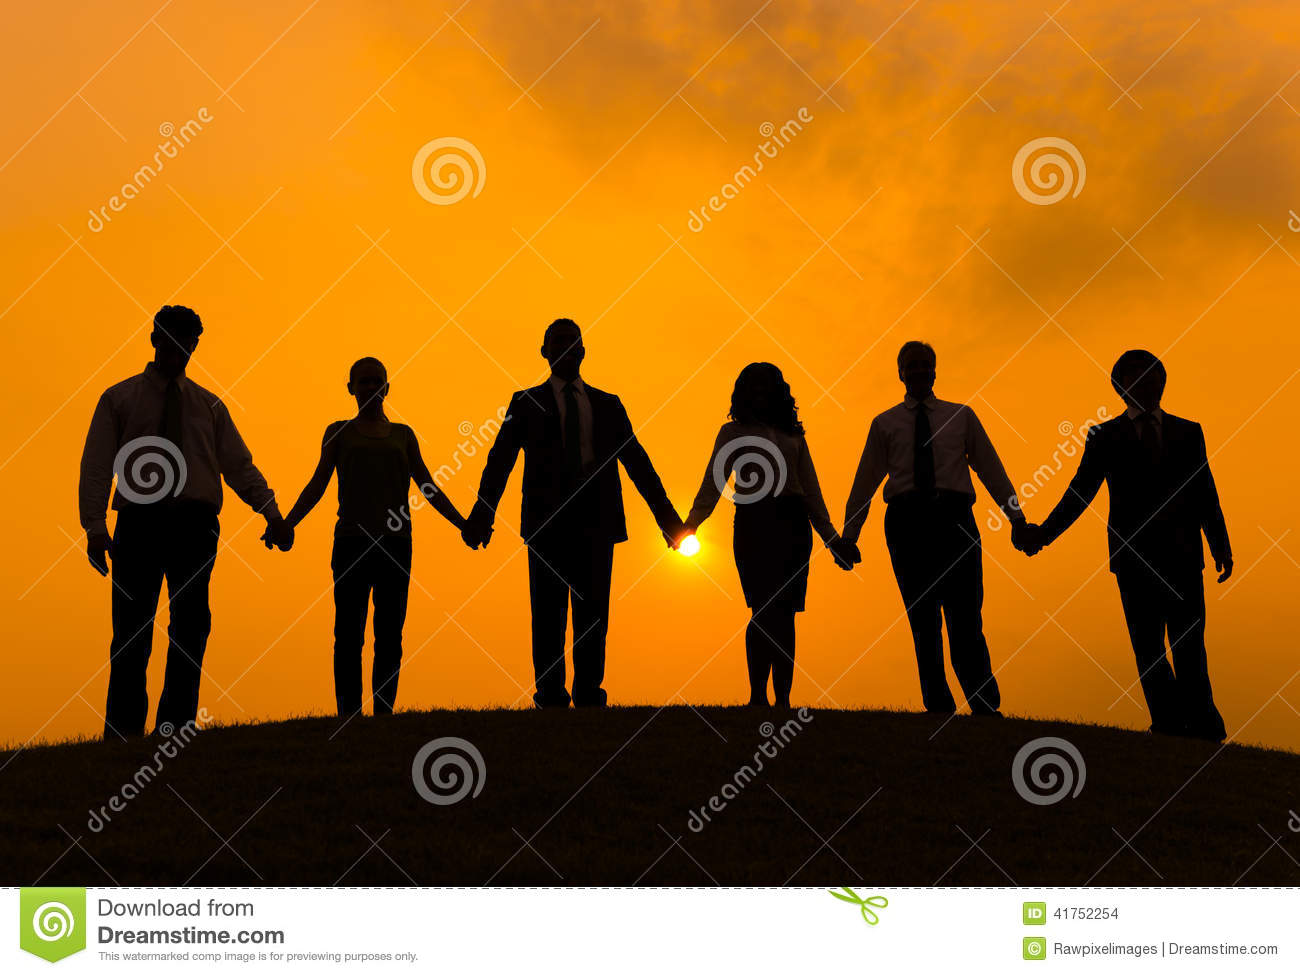 Silhouettes of Business People Holding Hands Outdoors